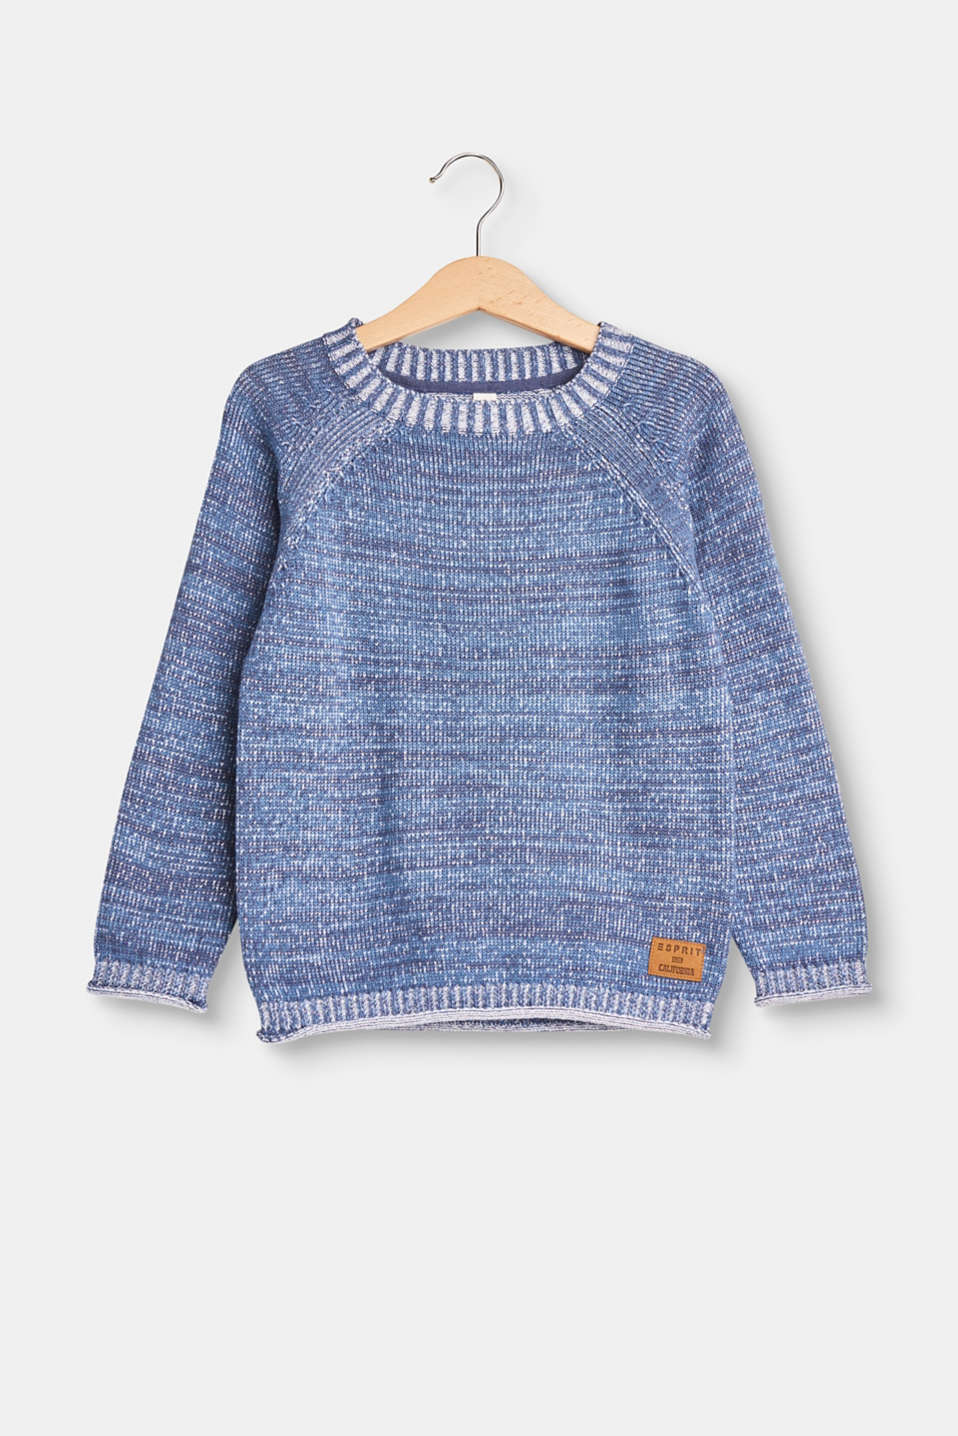 Esprit - Melange jumper in 100% cotton